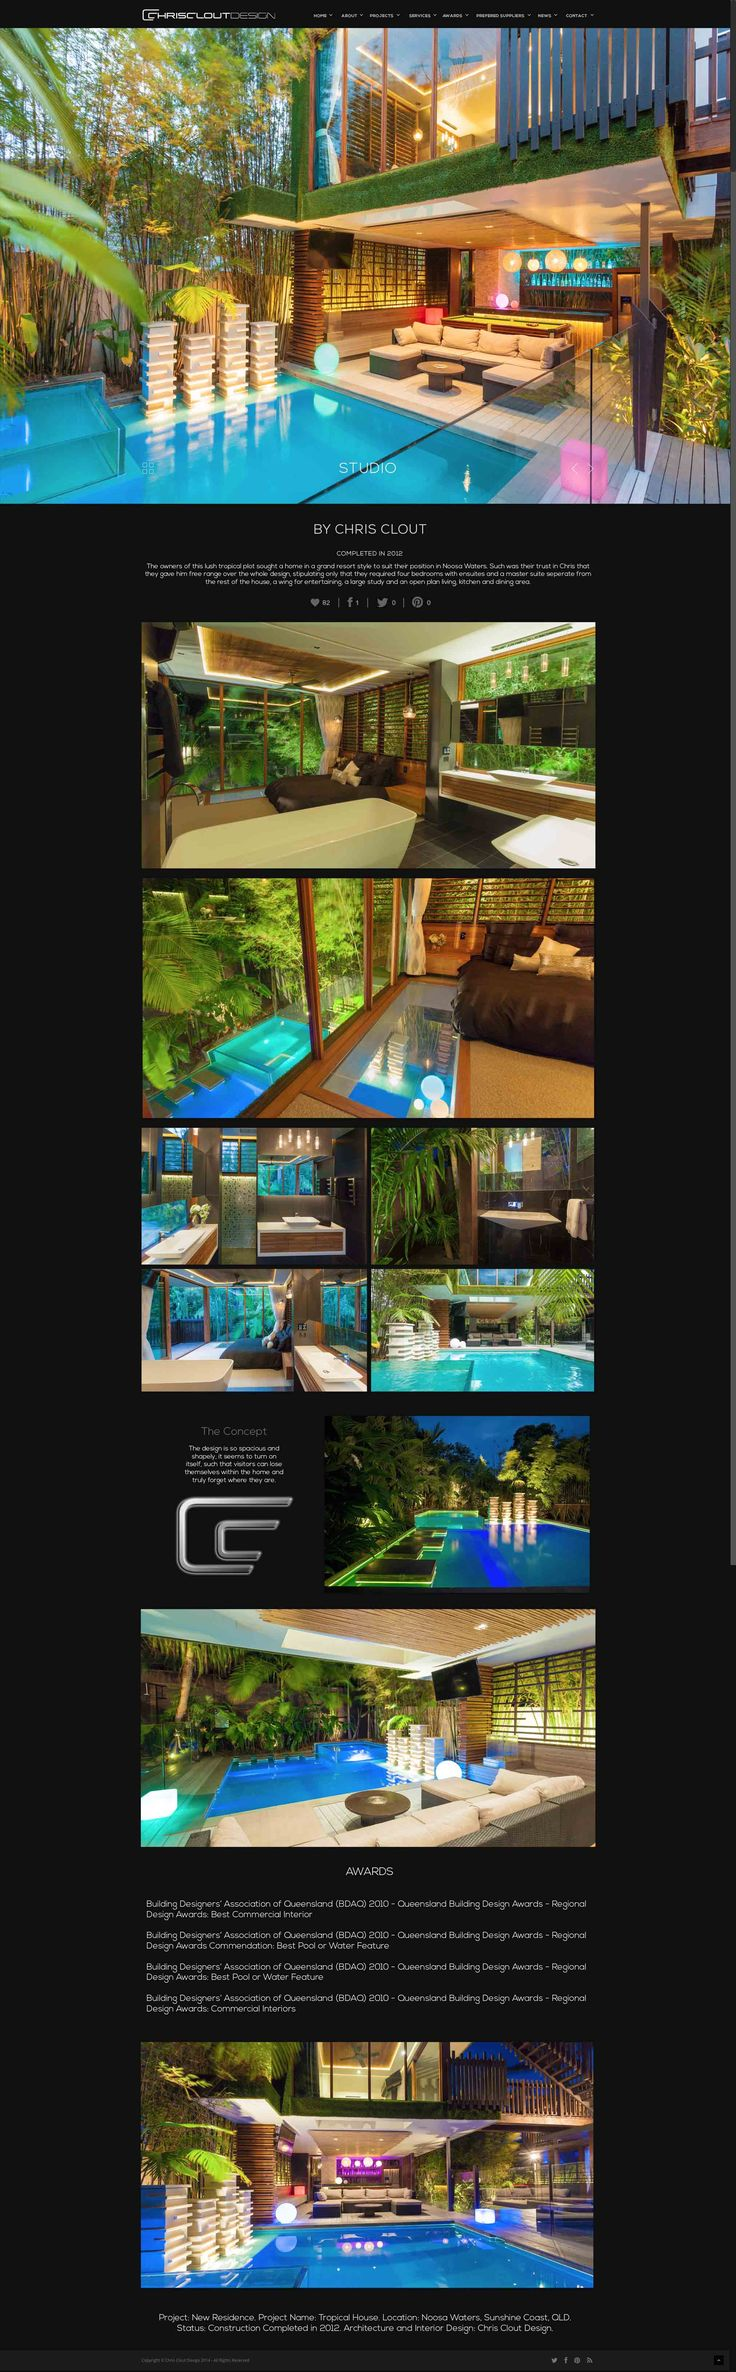 Chris Clout Design House Luxury Modern Resort Living Lighting Bathroom Interiors Pool Tropical